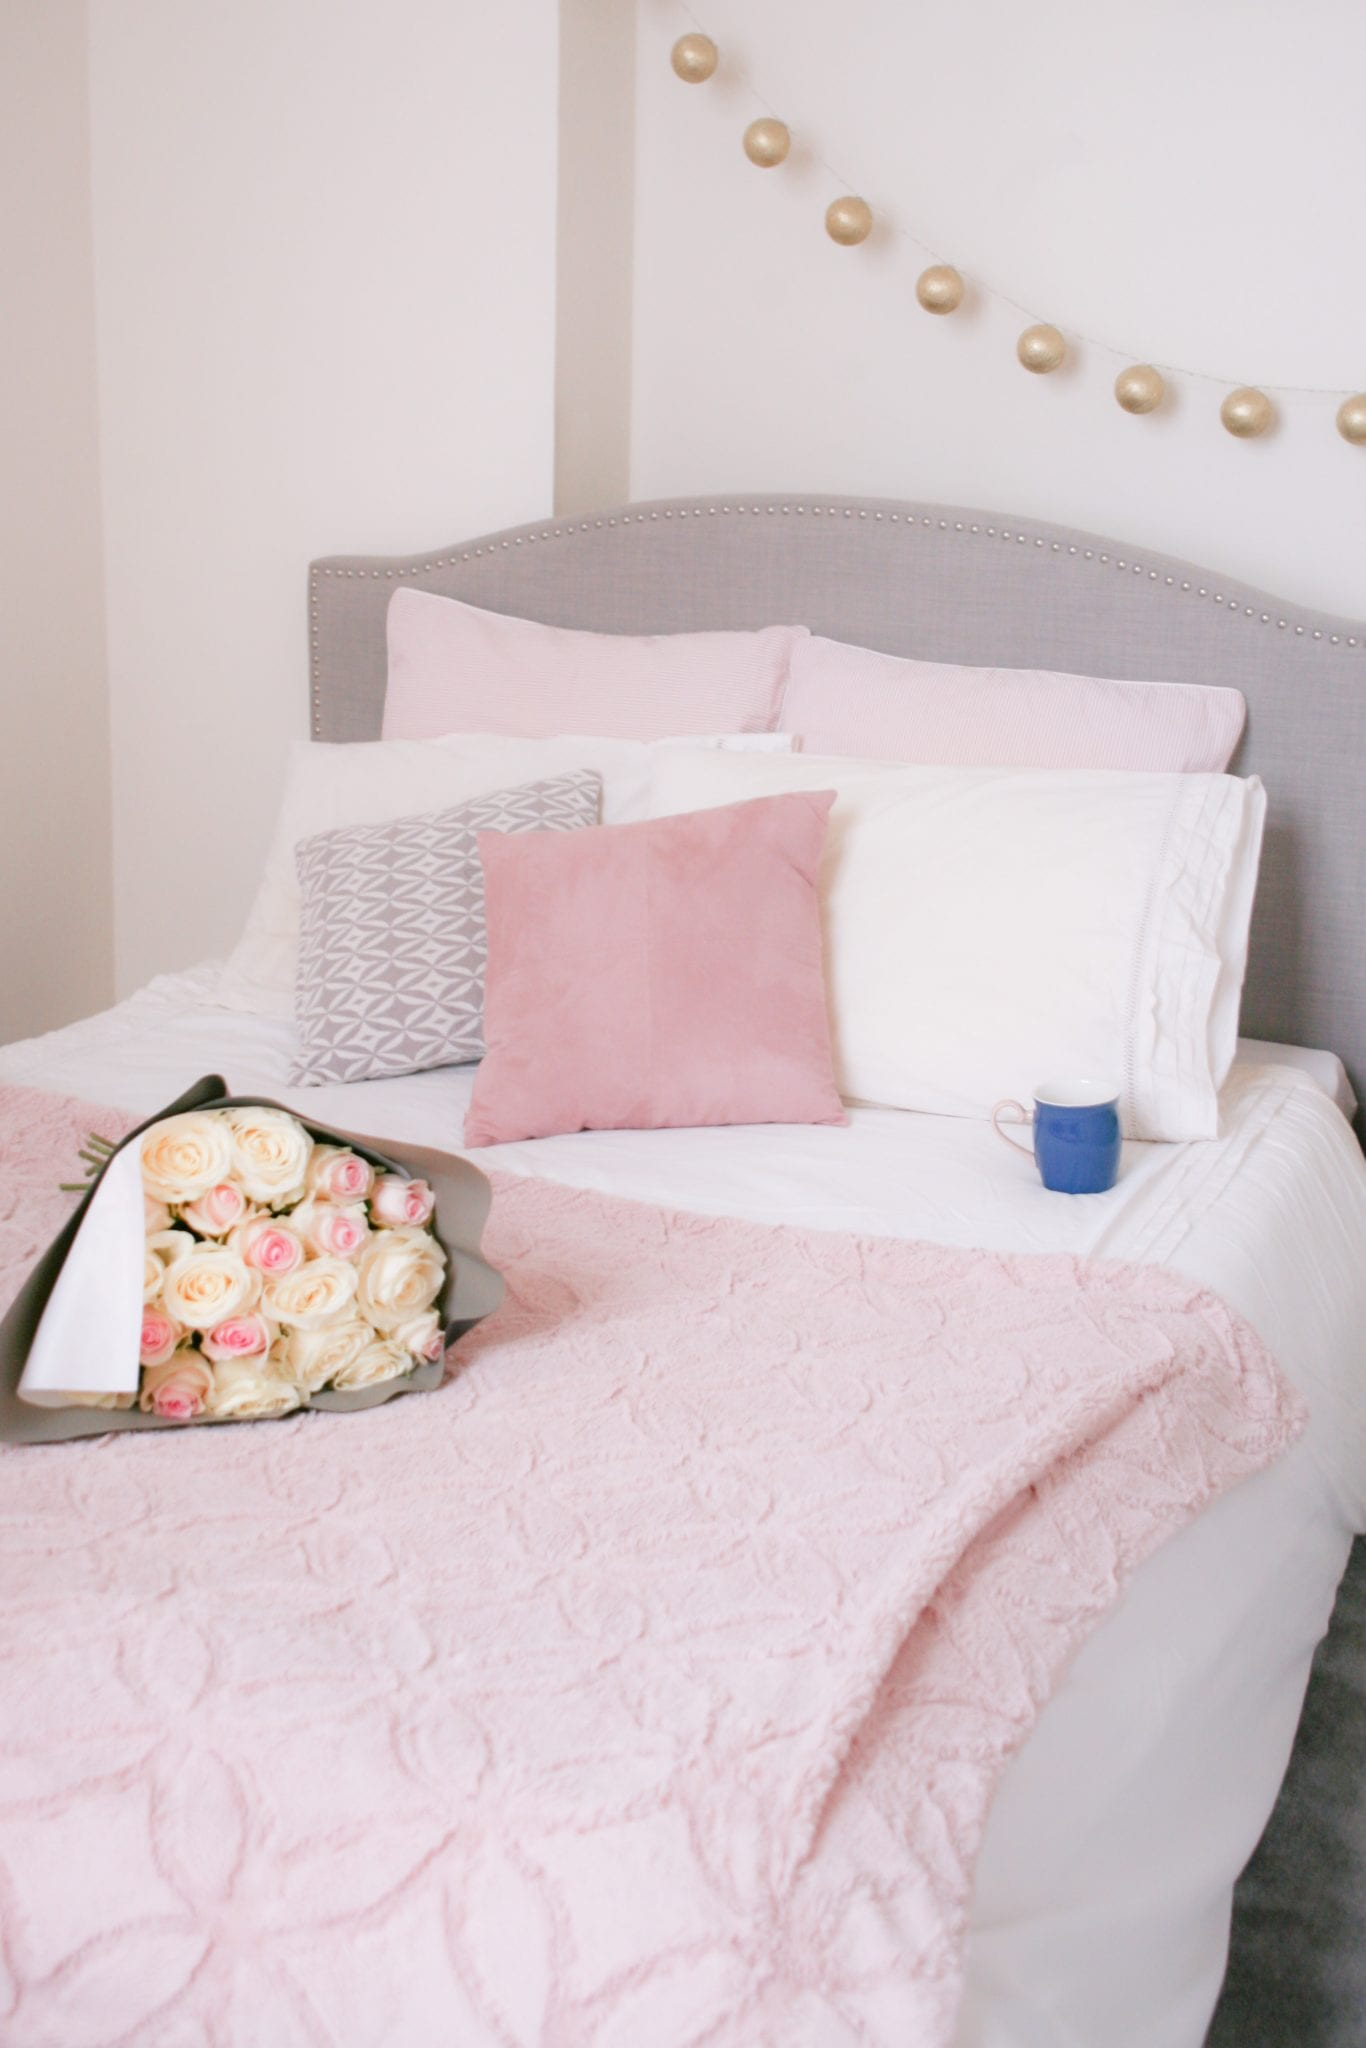 Home decoration : une chambre aux couleurs pastel, du rose et du blanc / Blog-lifestyle-estelle-some-place-called-home